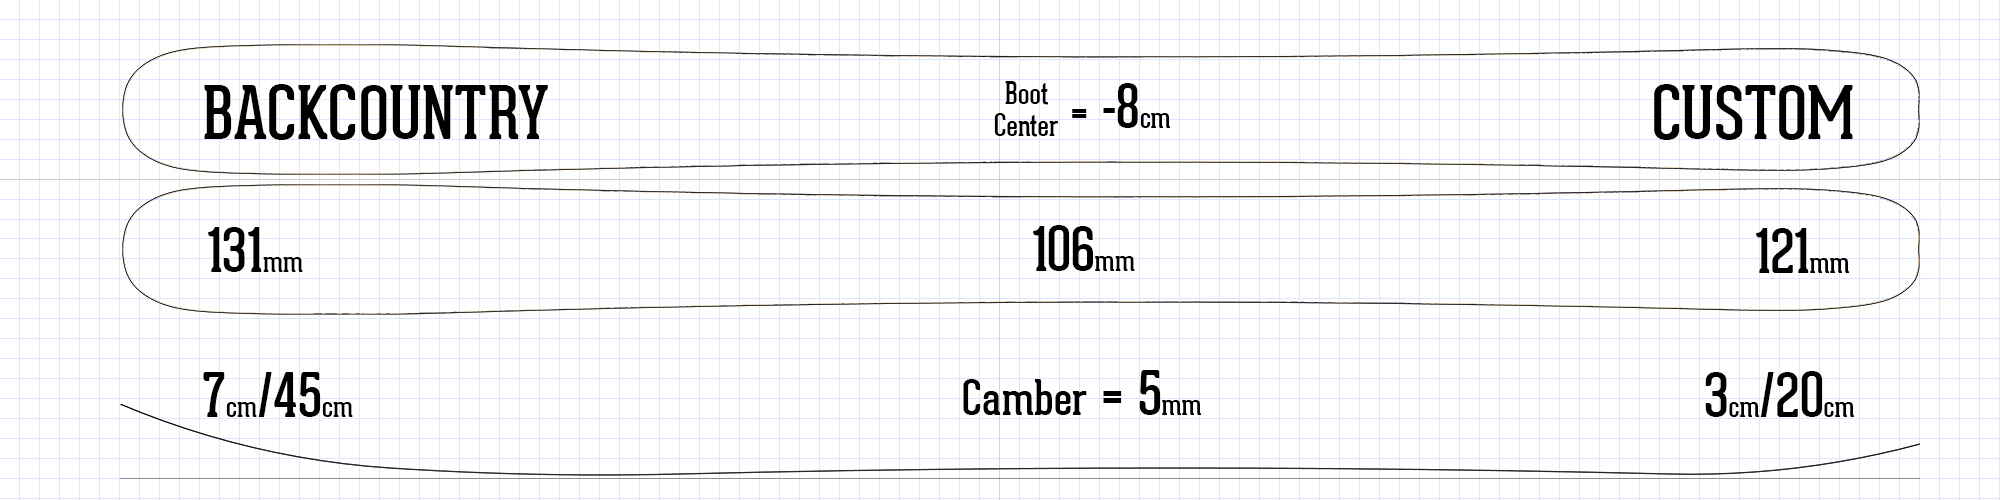 Digital drawing of Backcountry ski shape and camber profile with ski specs listed